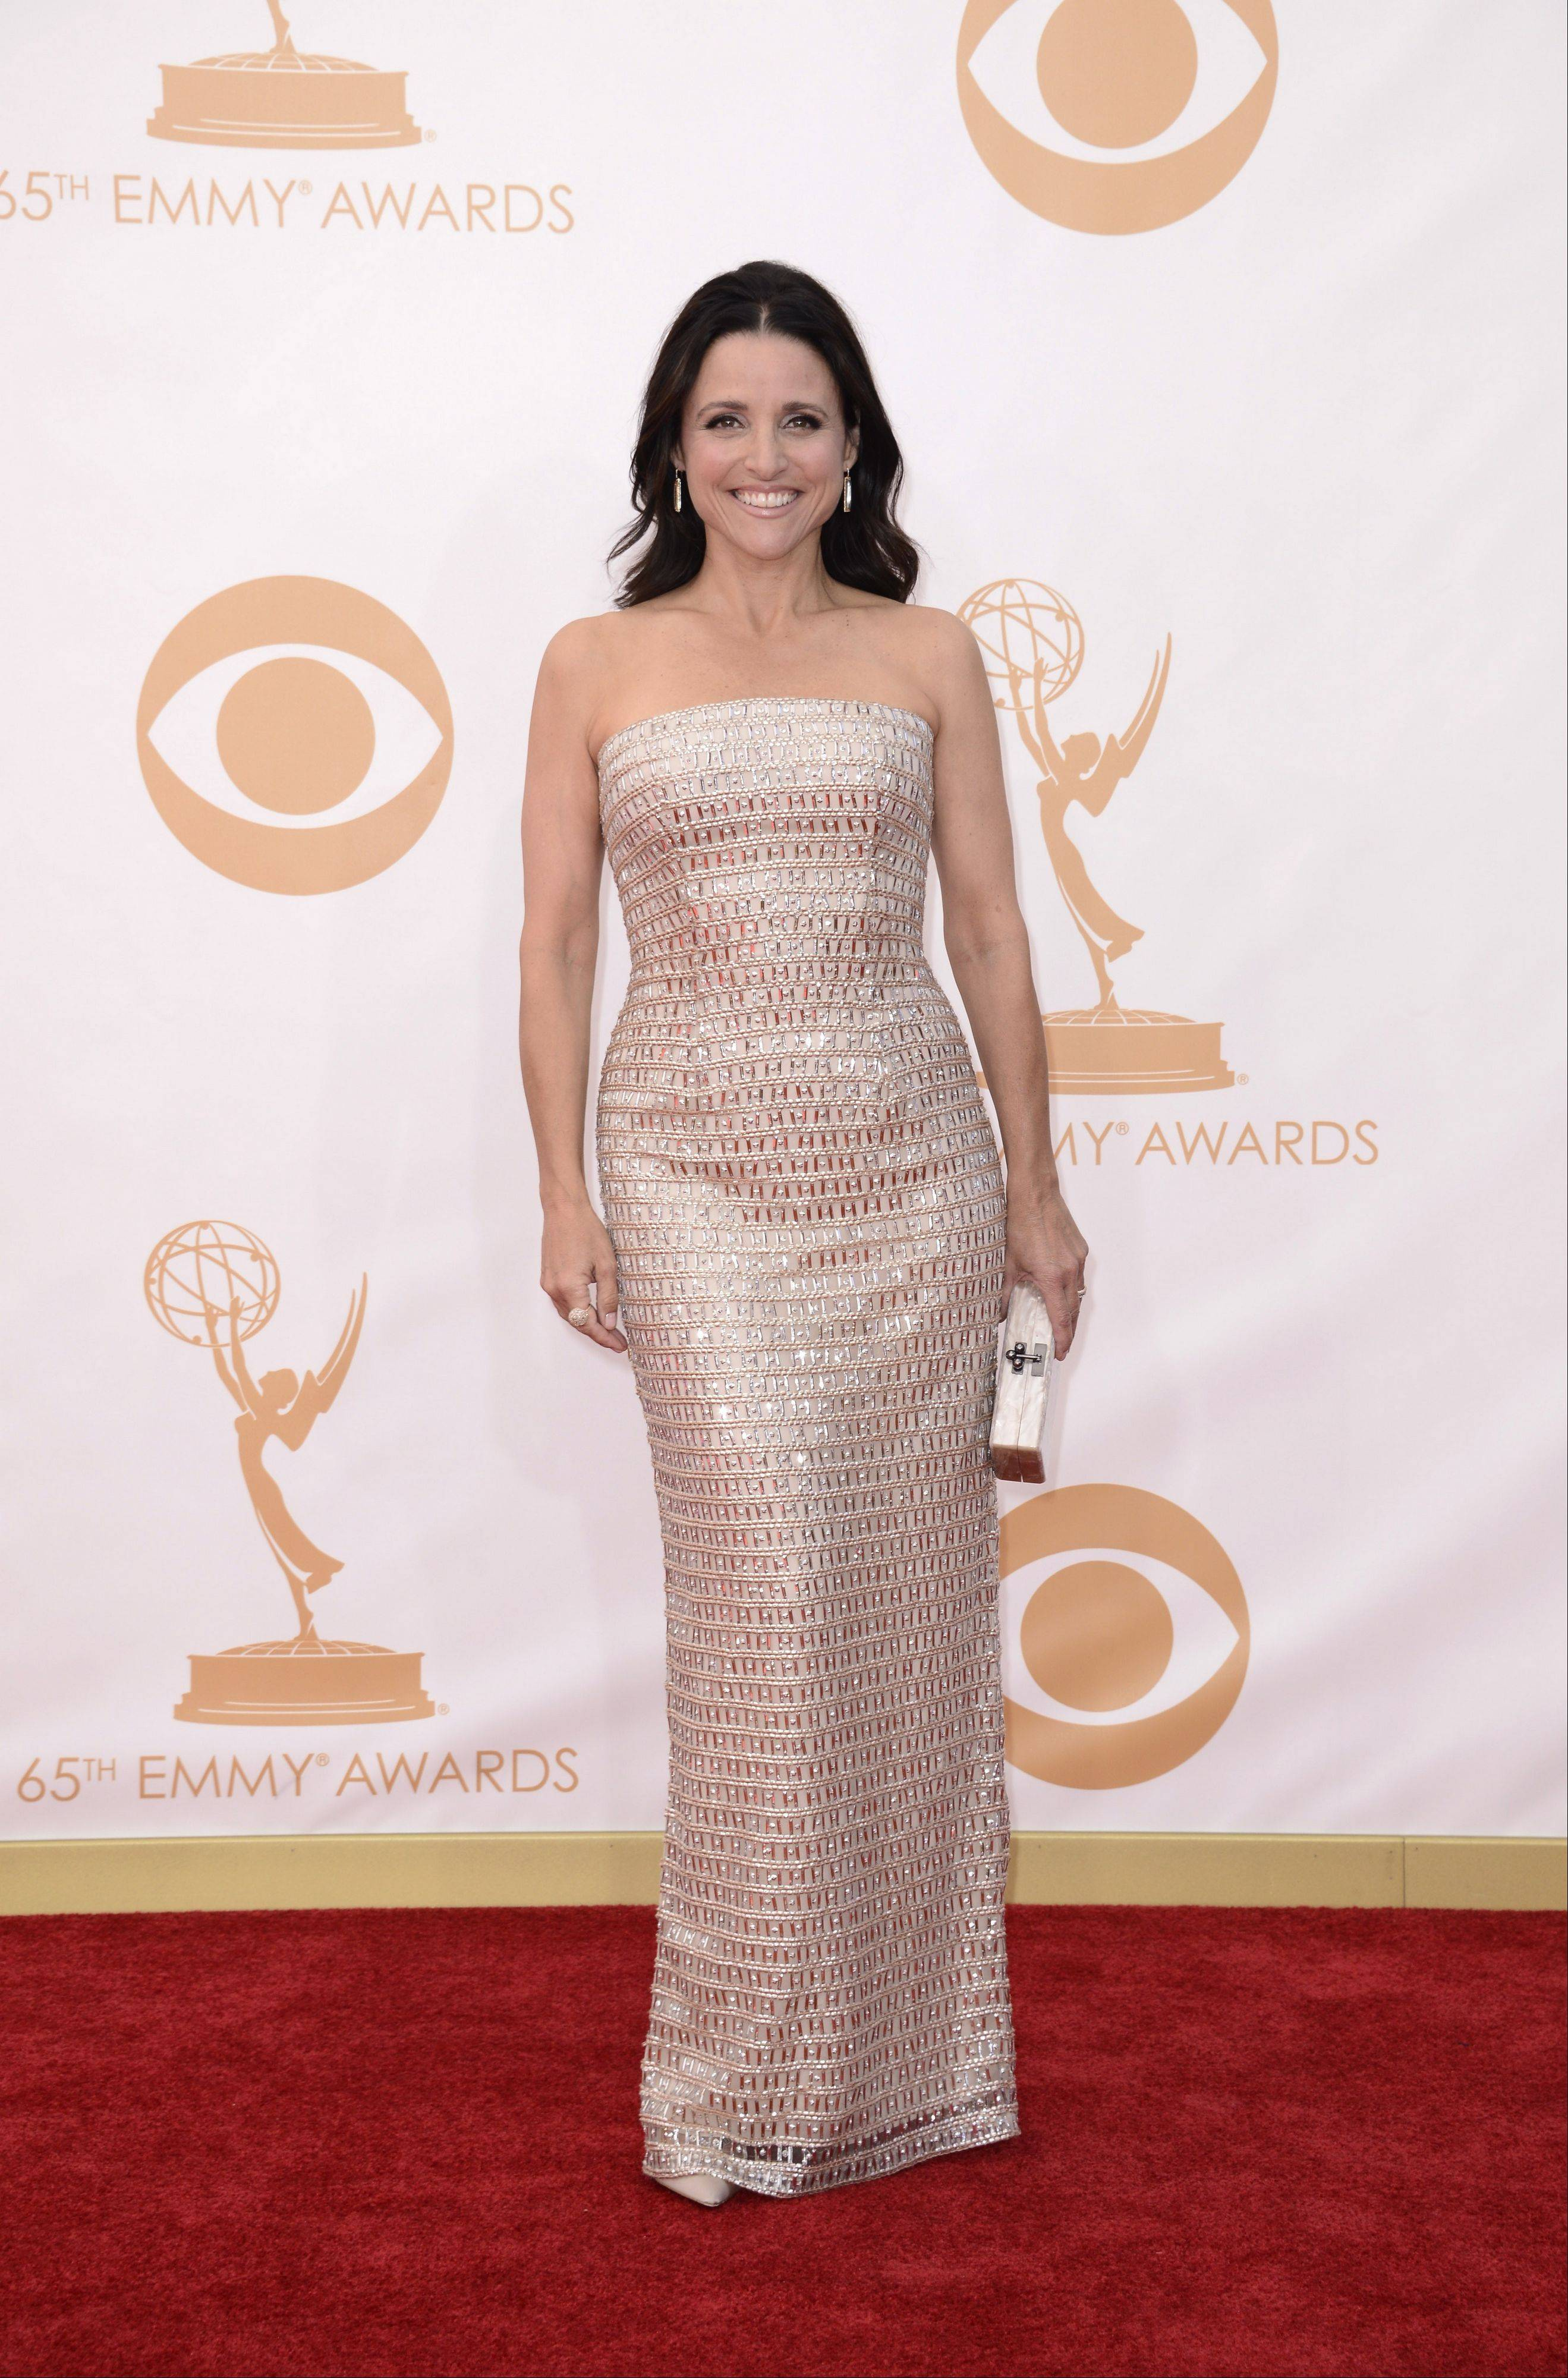 Julia Louis-Dreyfus, wearing Monique Lhuiller, arrives at the 65th Primetime Emmy Awards at Nokia Theatre on Sunday in Los Angeles.